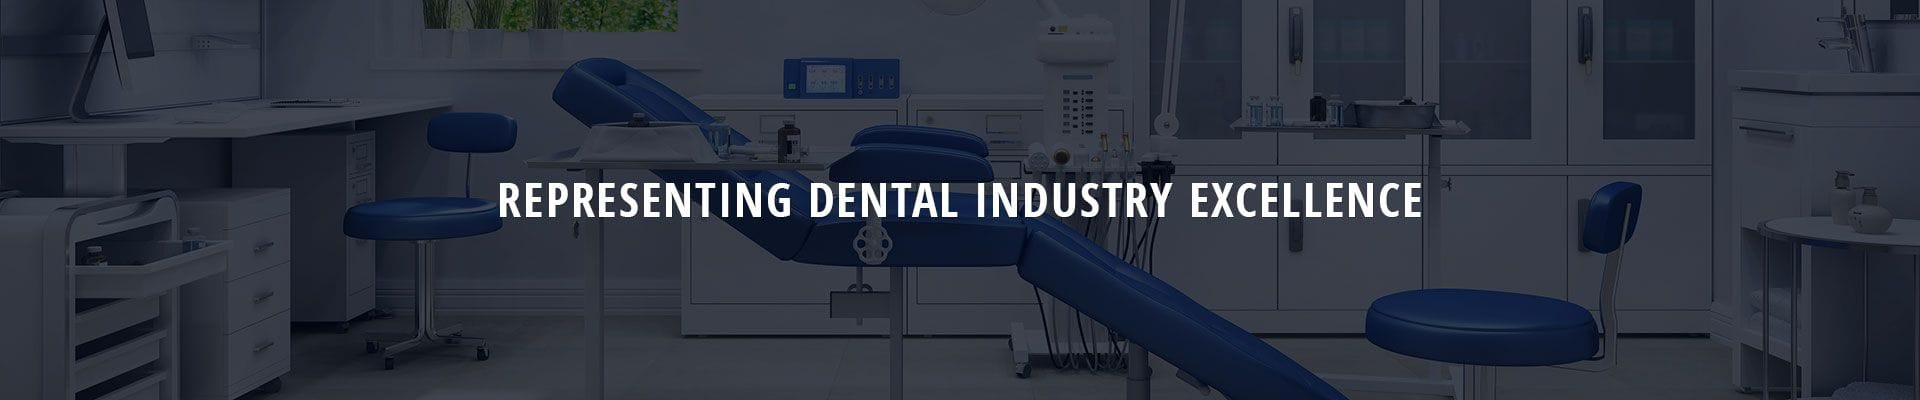 ADIA Board | Australian Dental Industry Association